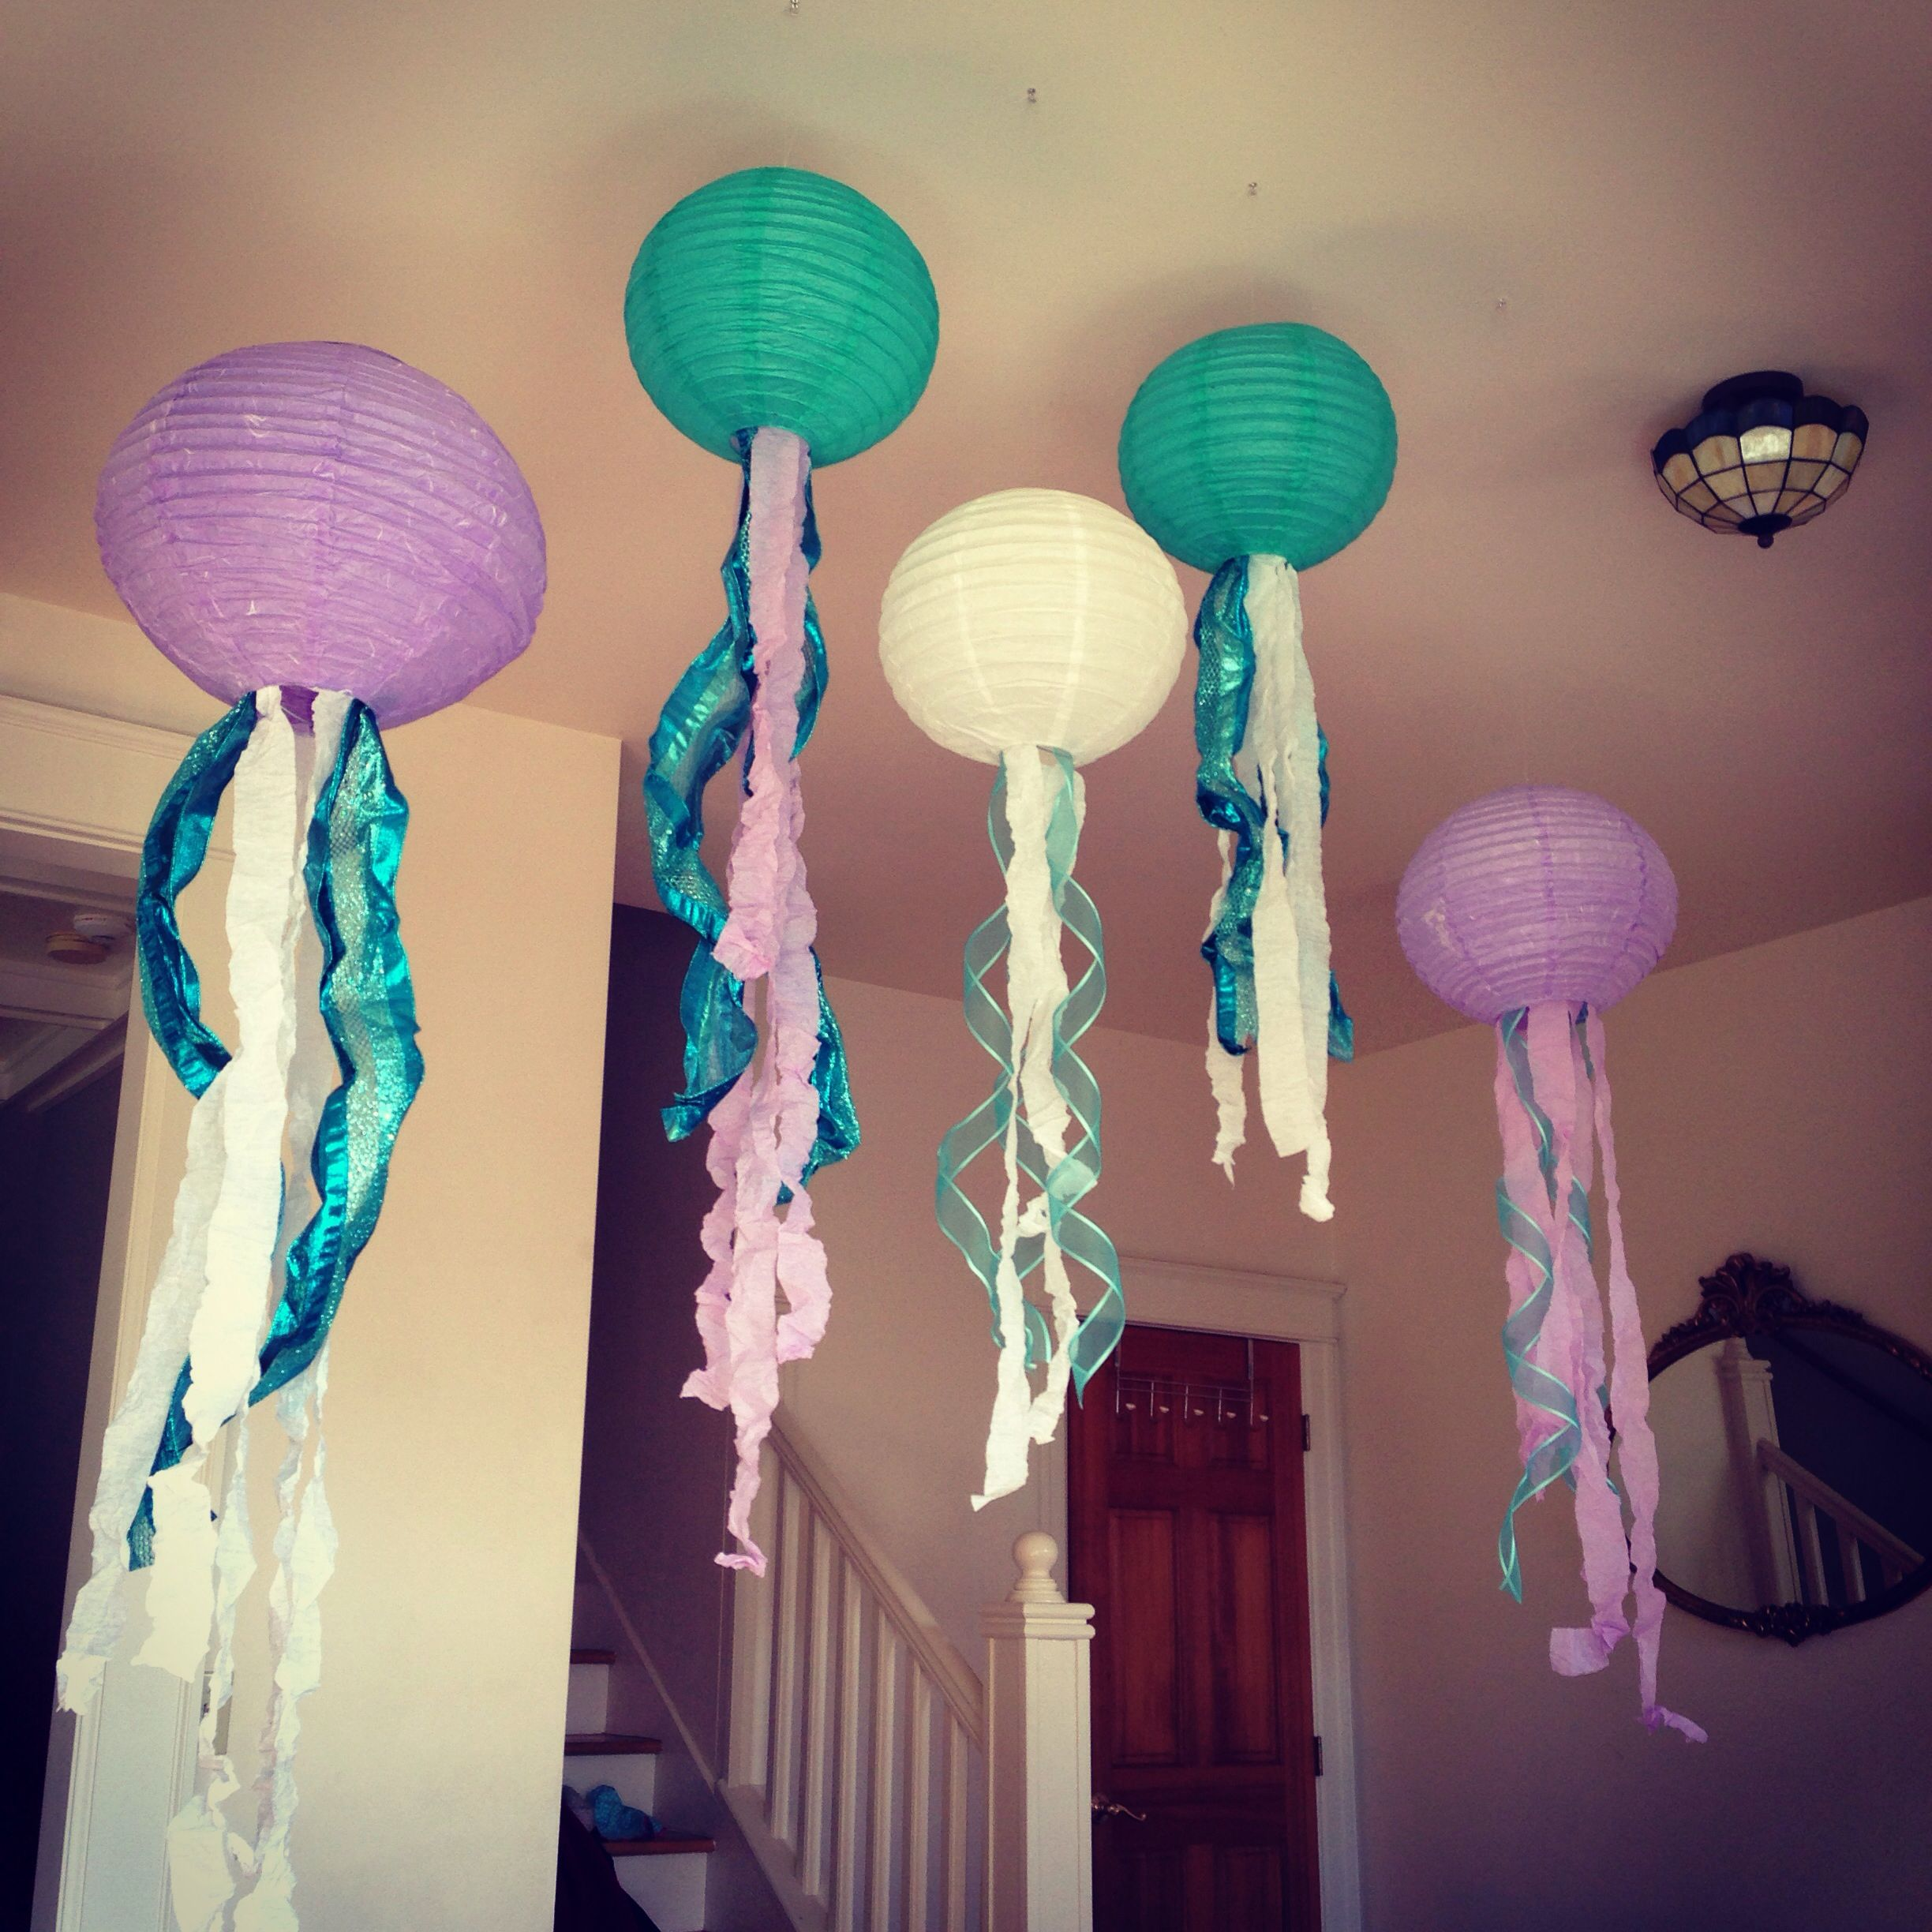 Jellyfish Decorations! Paper Lanterns, Wire-trim Ribbon